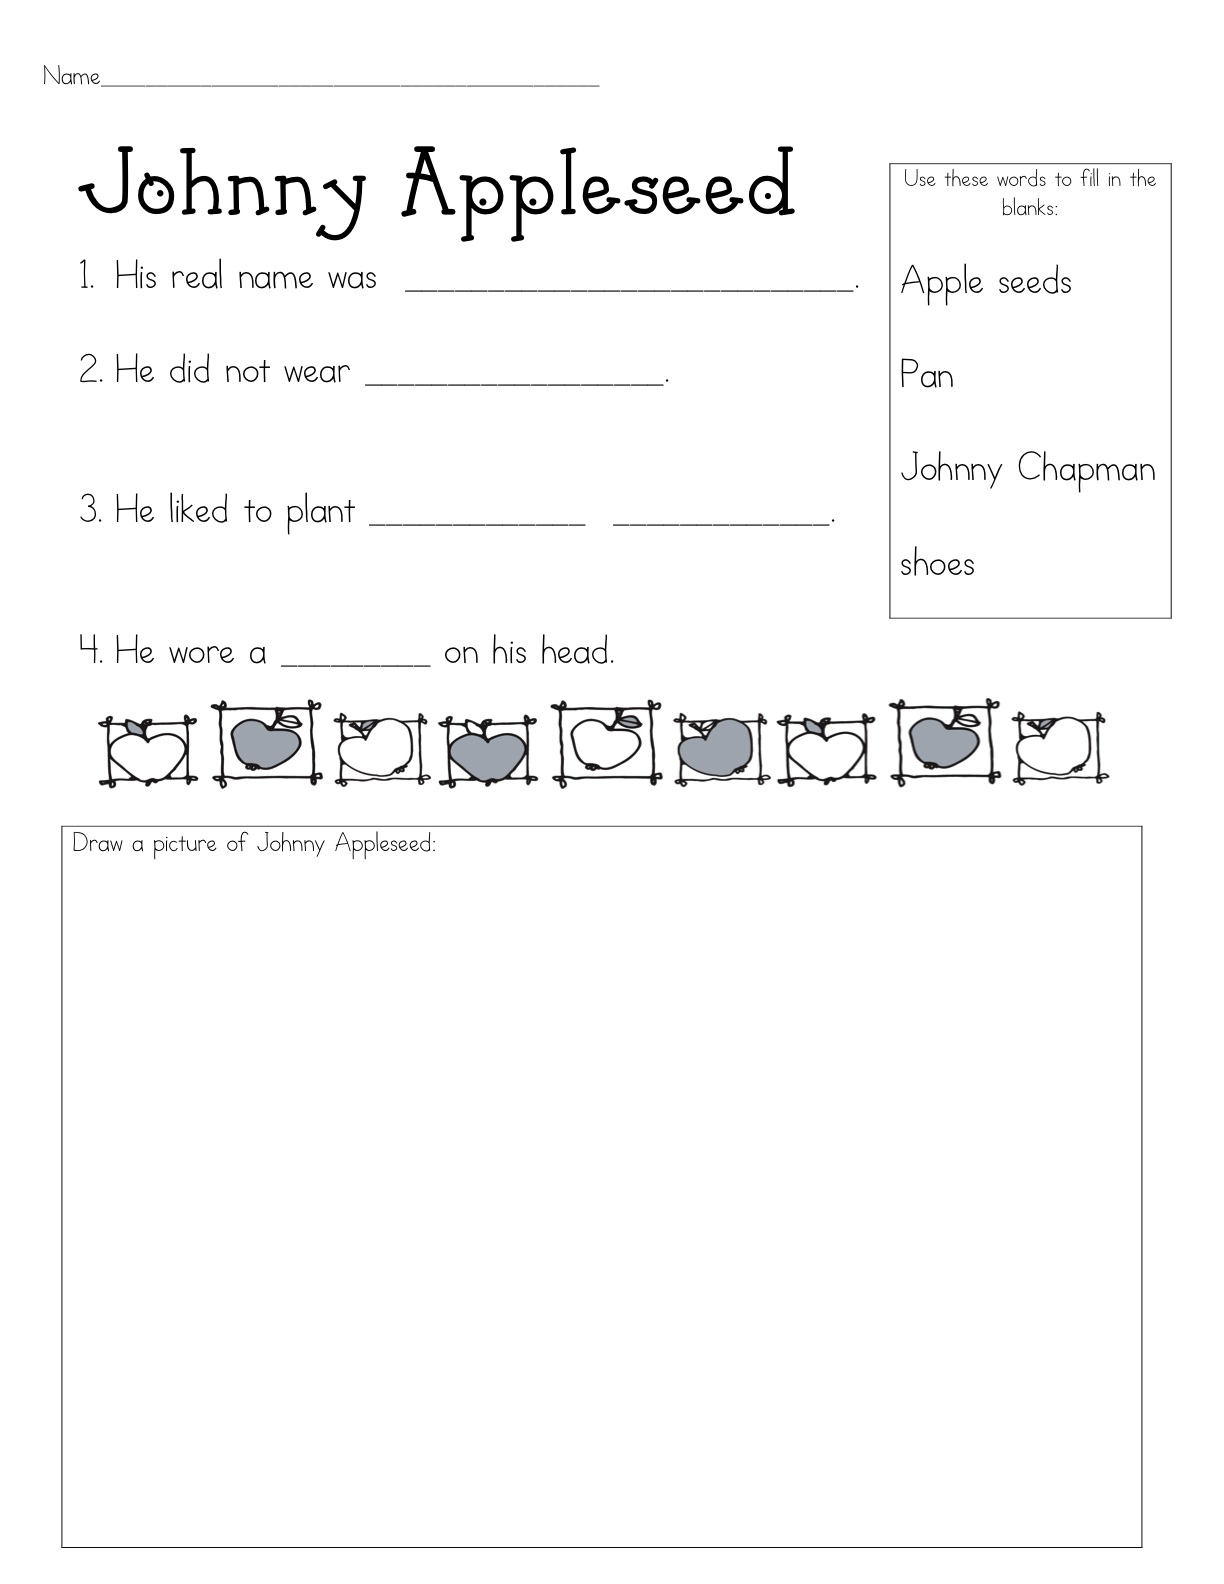 Worksheets Johnny Appleseed Worksheets what the teacher wants youre apple of my eye